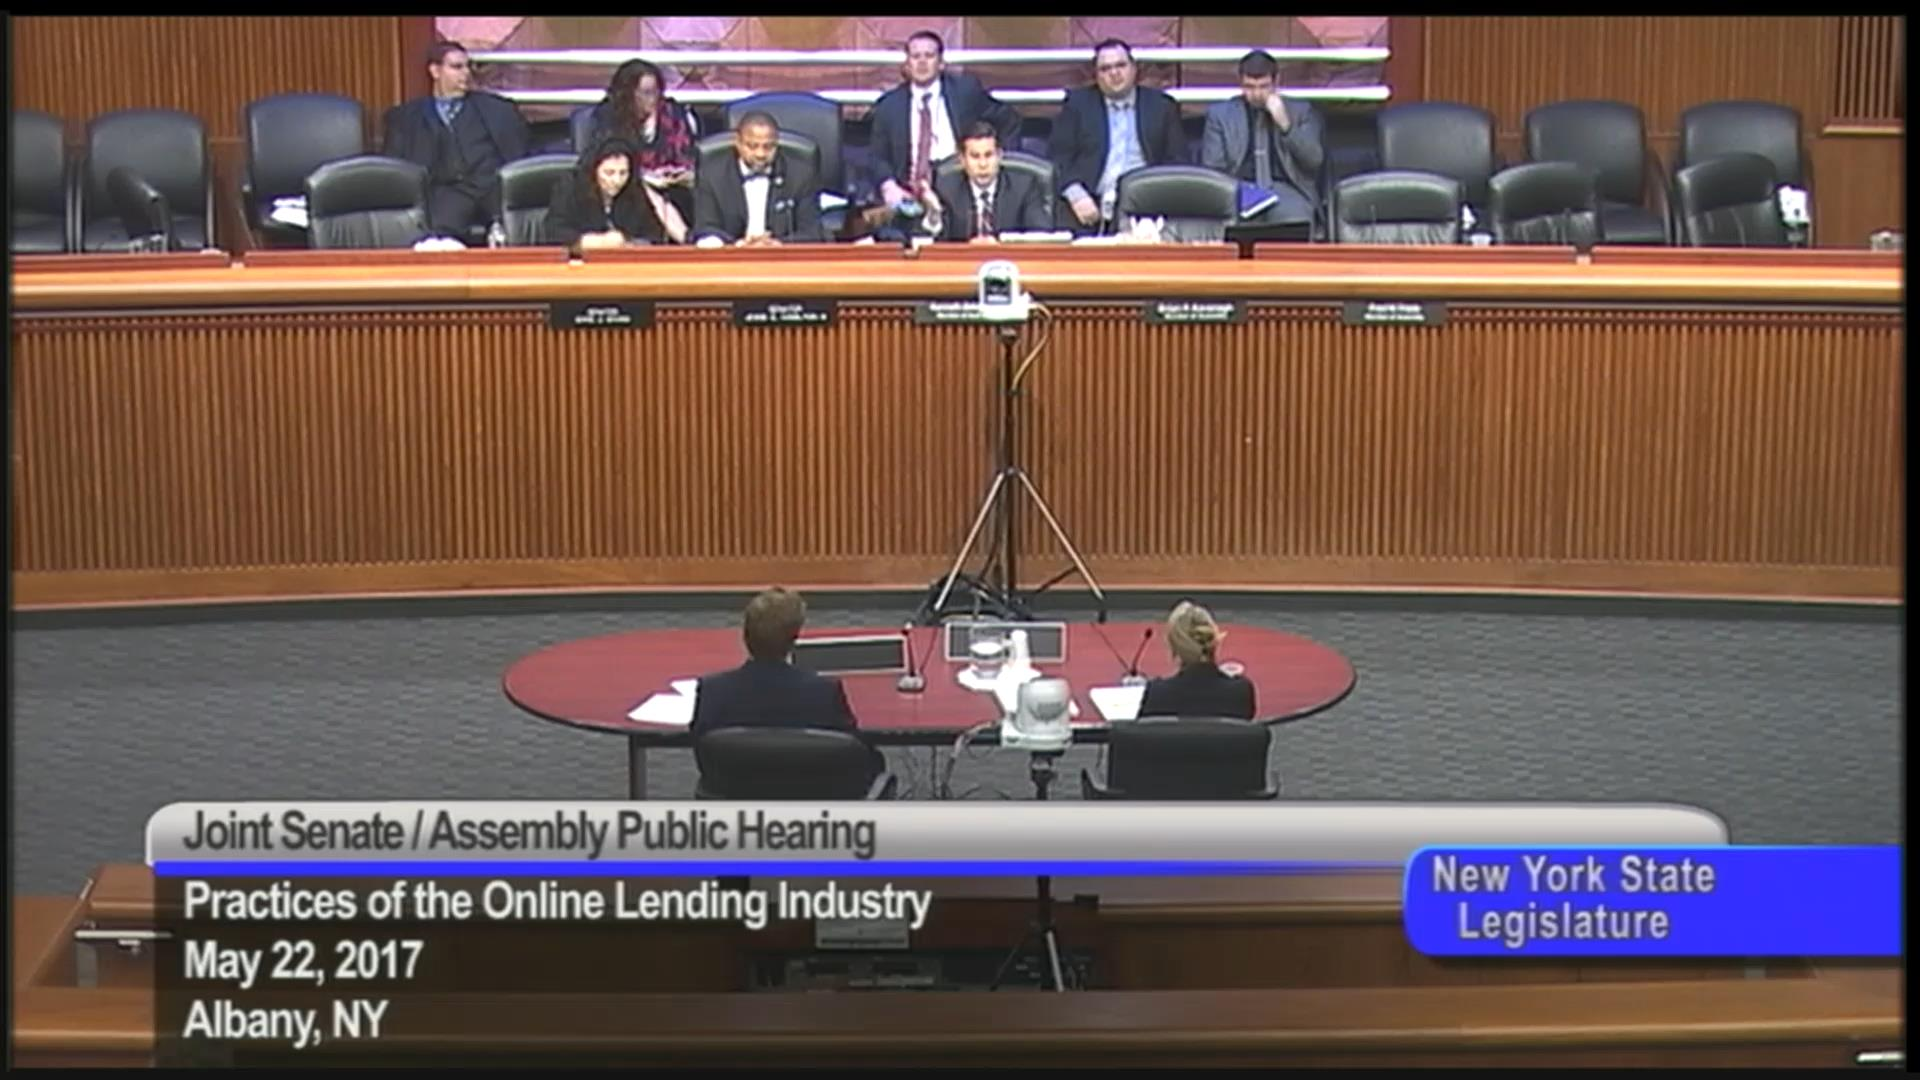 Assembly-Senate Public Hearing Concerning Online Lending